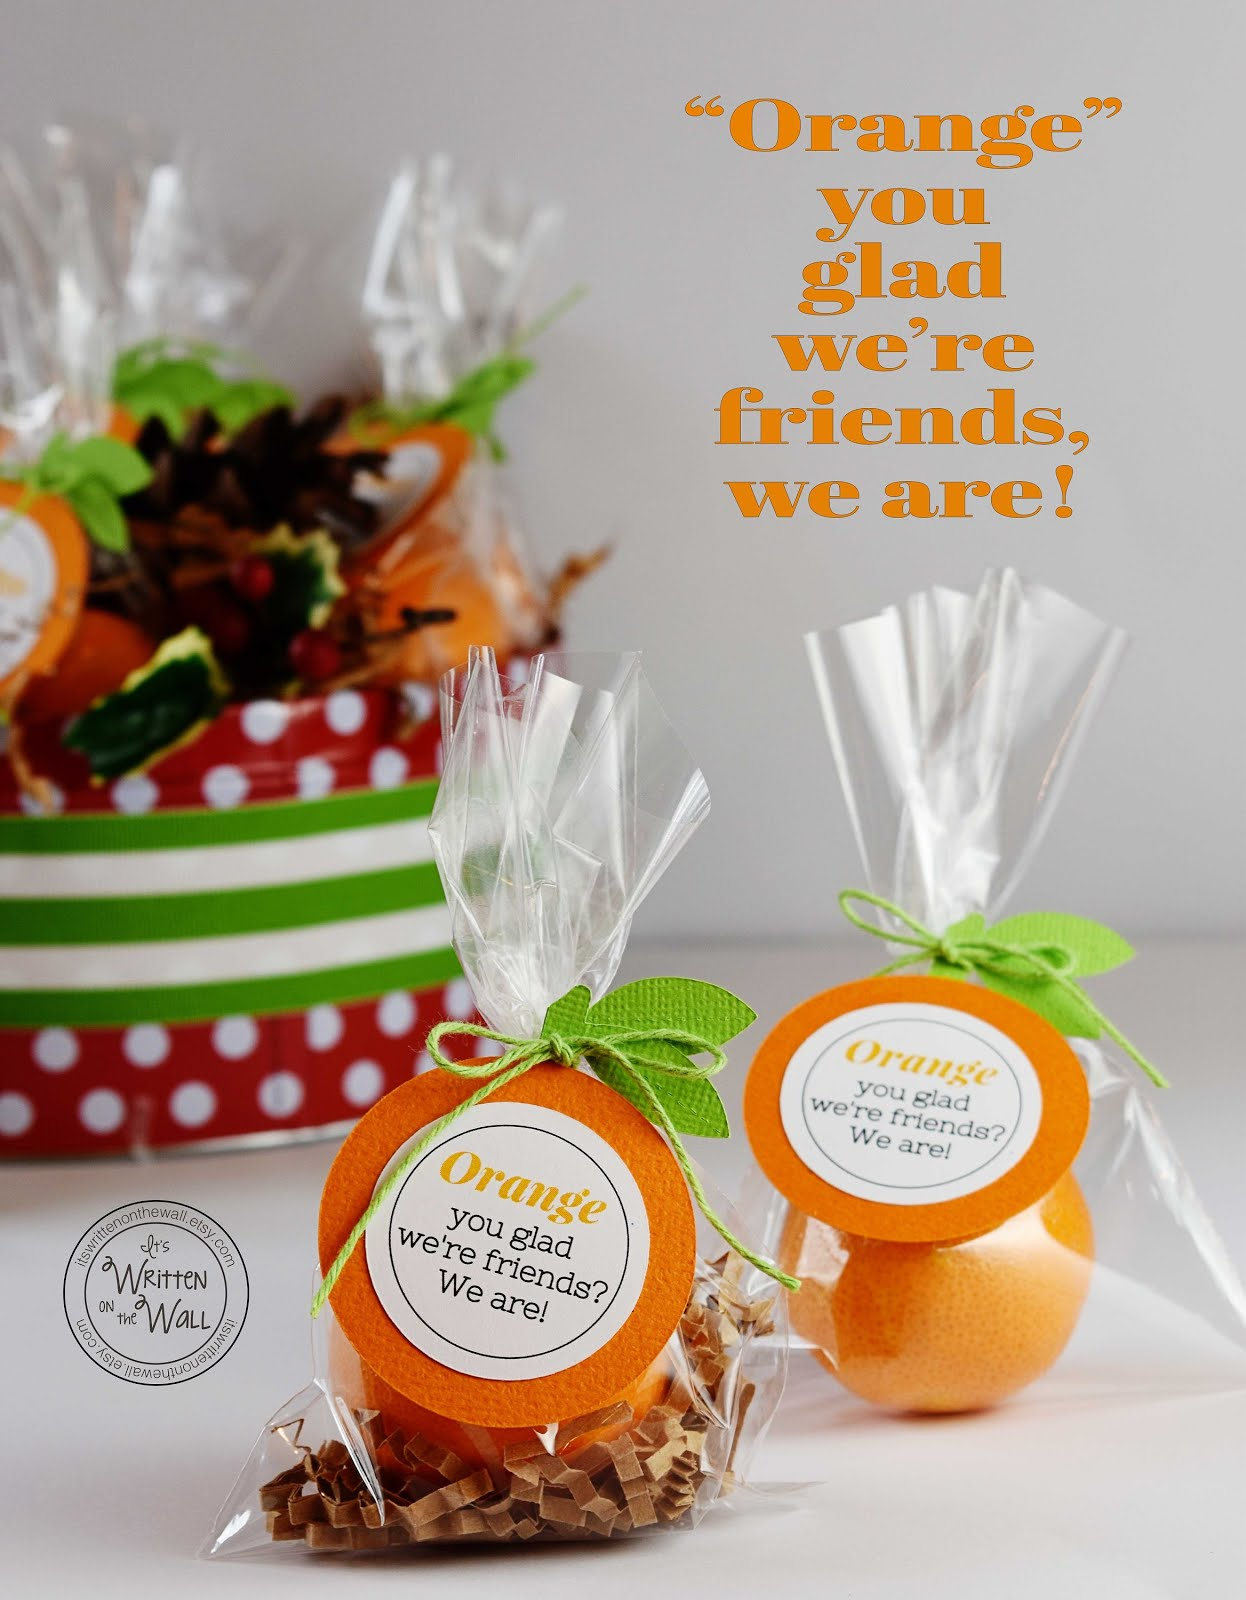 Oranges for Christmas-Neighbor, Family and Friends Gifts